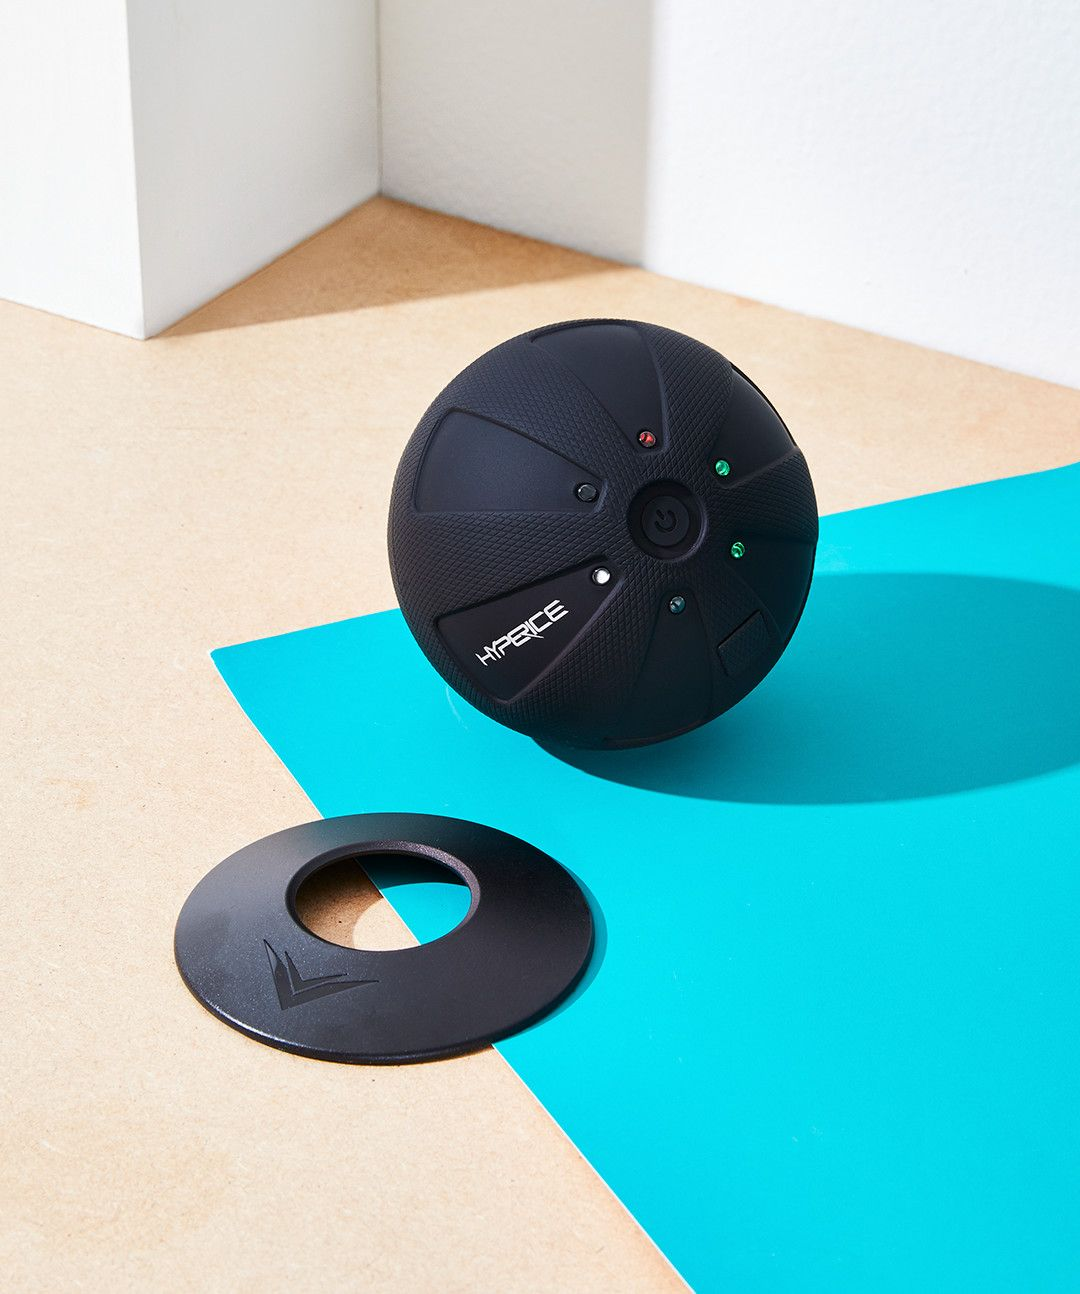 Hyperice's Hypersphere Mini Massage Therapy Ball Will Ease Your Achy, Tension-Filled Muscles